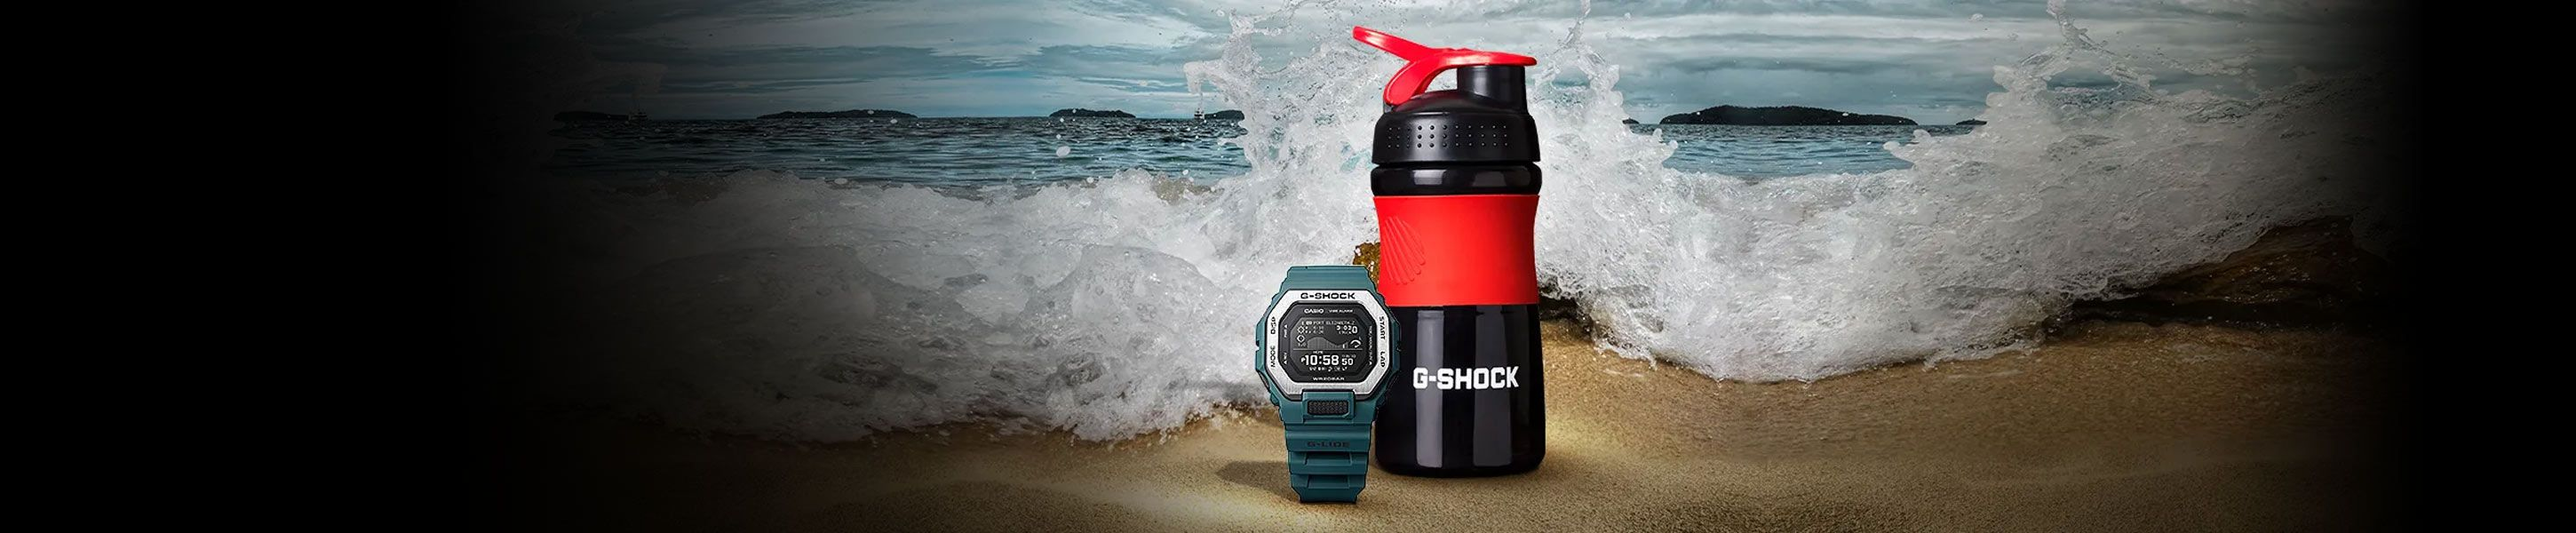 Get your FREE exclusive G-SHOCK branded water bottle with purchase of select G-SHOCK watches. Hurry, while supplies last!